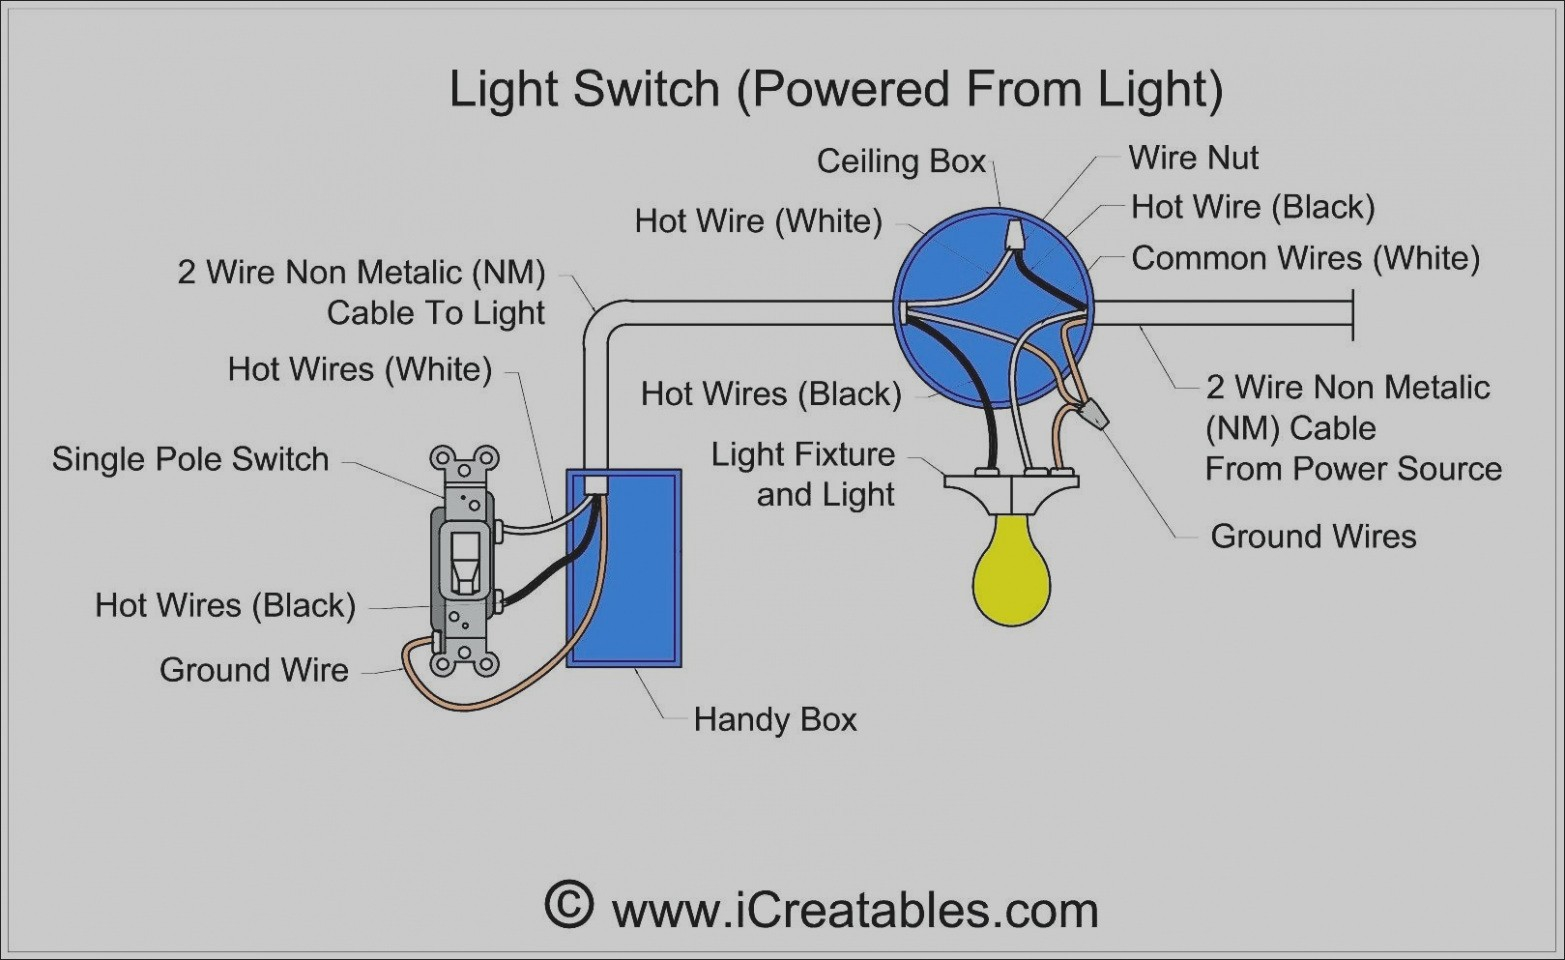 St5140 Arlec Wiring Diagram Light Switch in sizing 1565 X 960